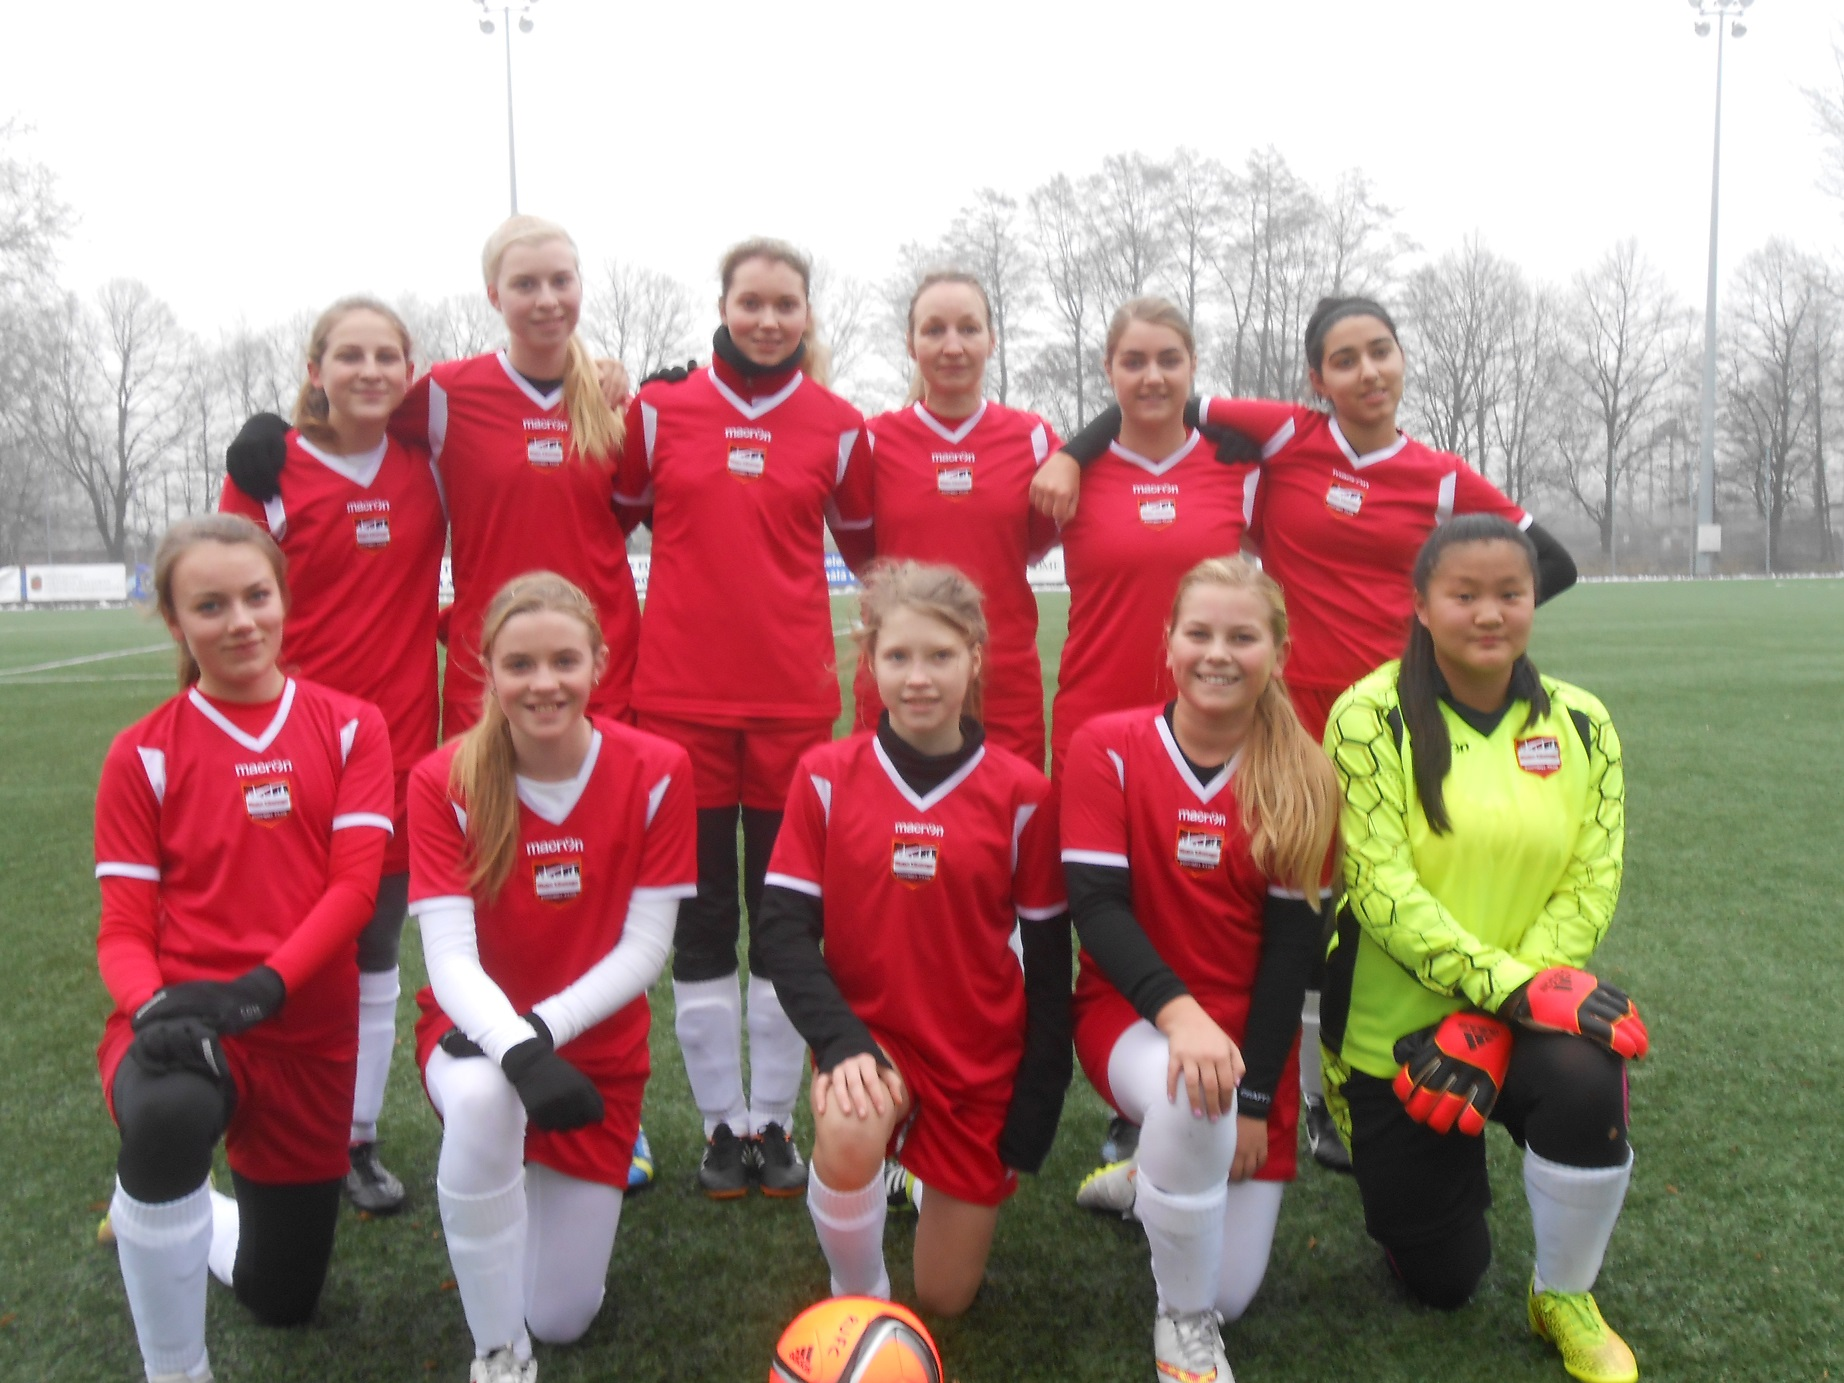 U16 girls riga united